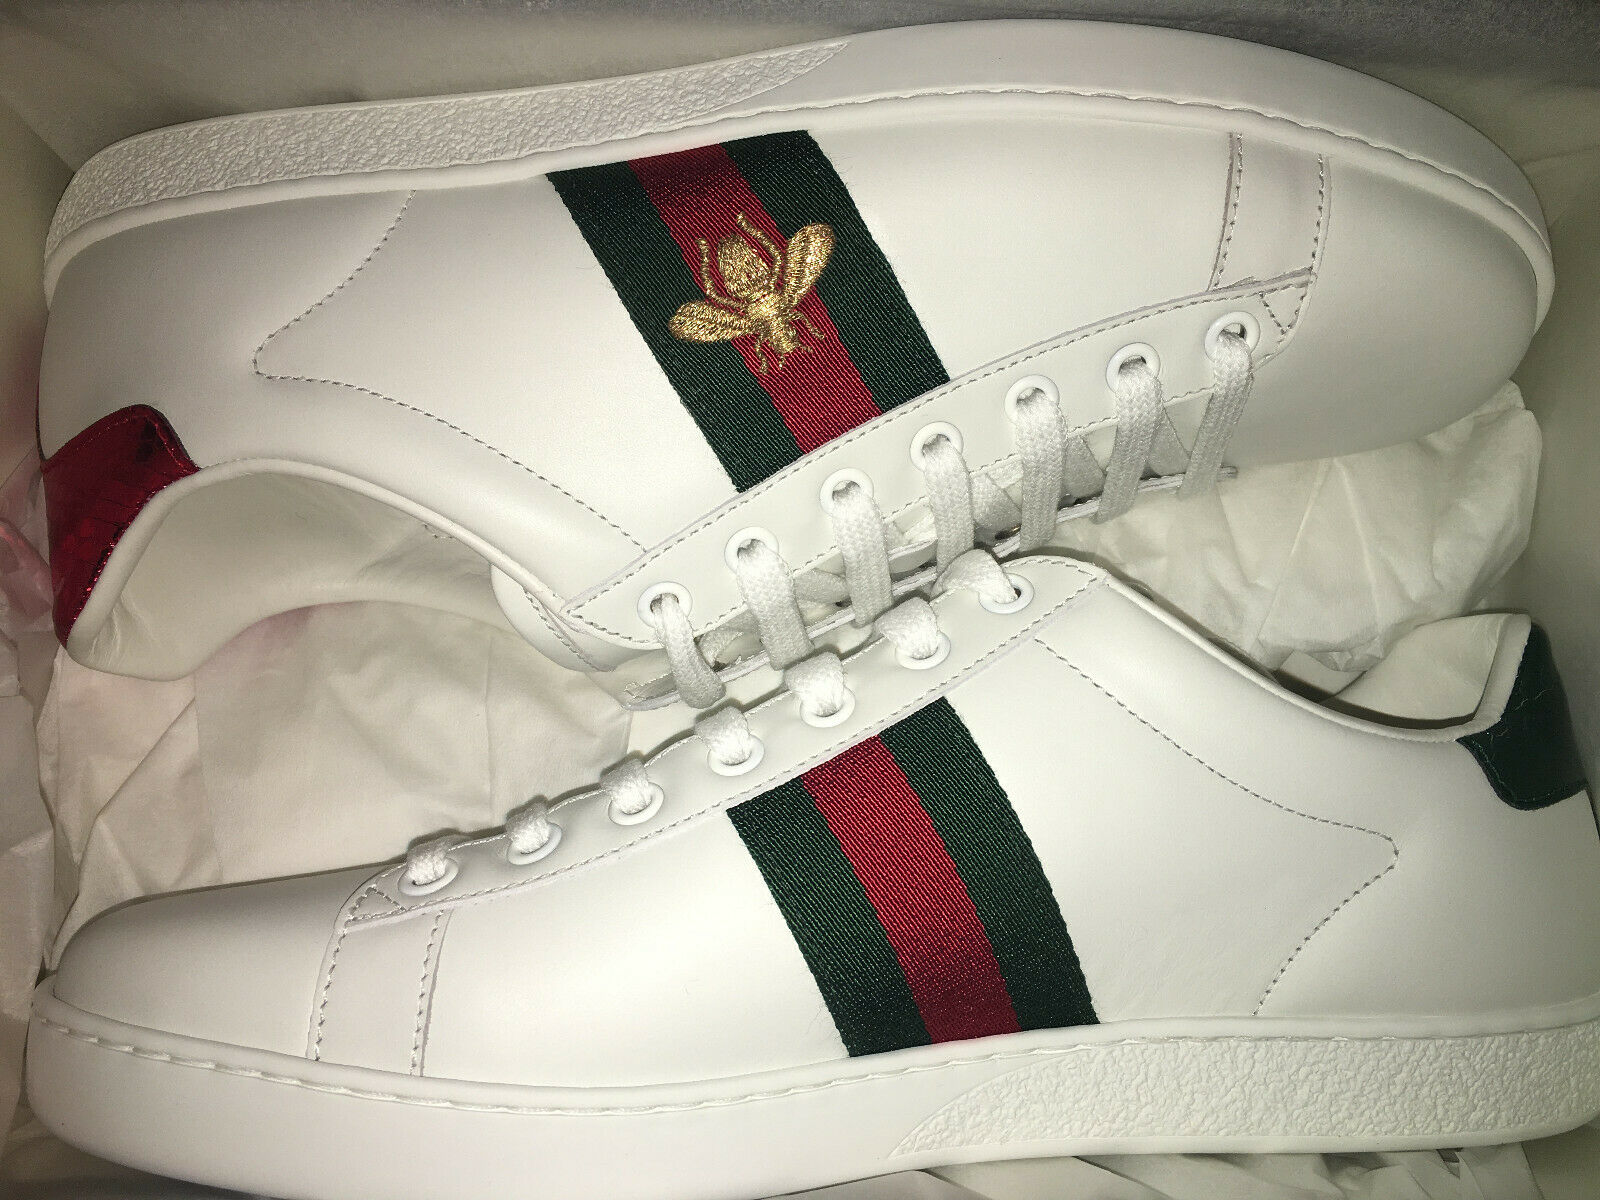 NEW $650 GUCCI Women Ace Embroidered Leather Sneakers Shoes EU 39 Or 40